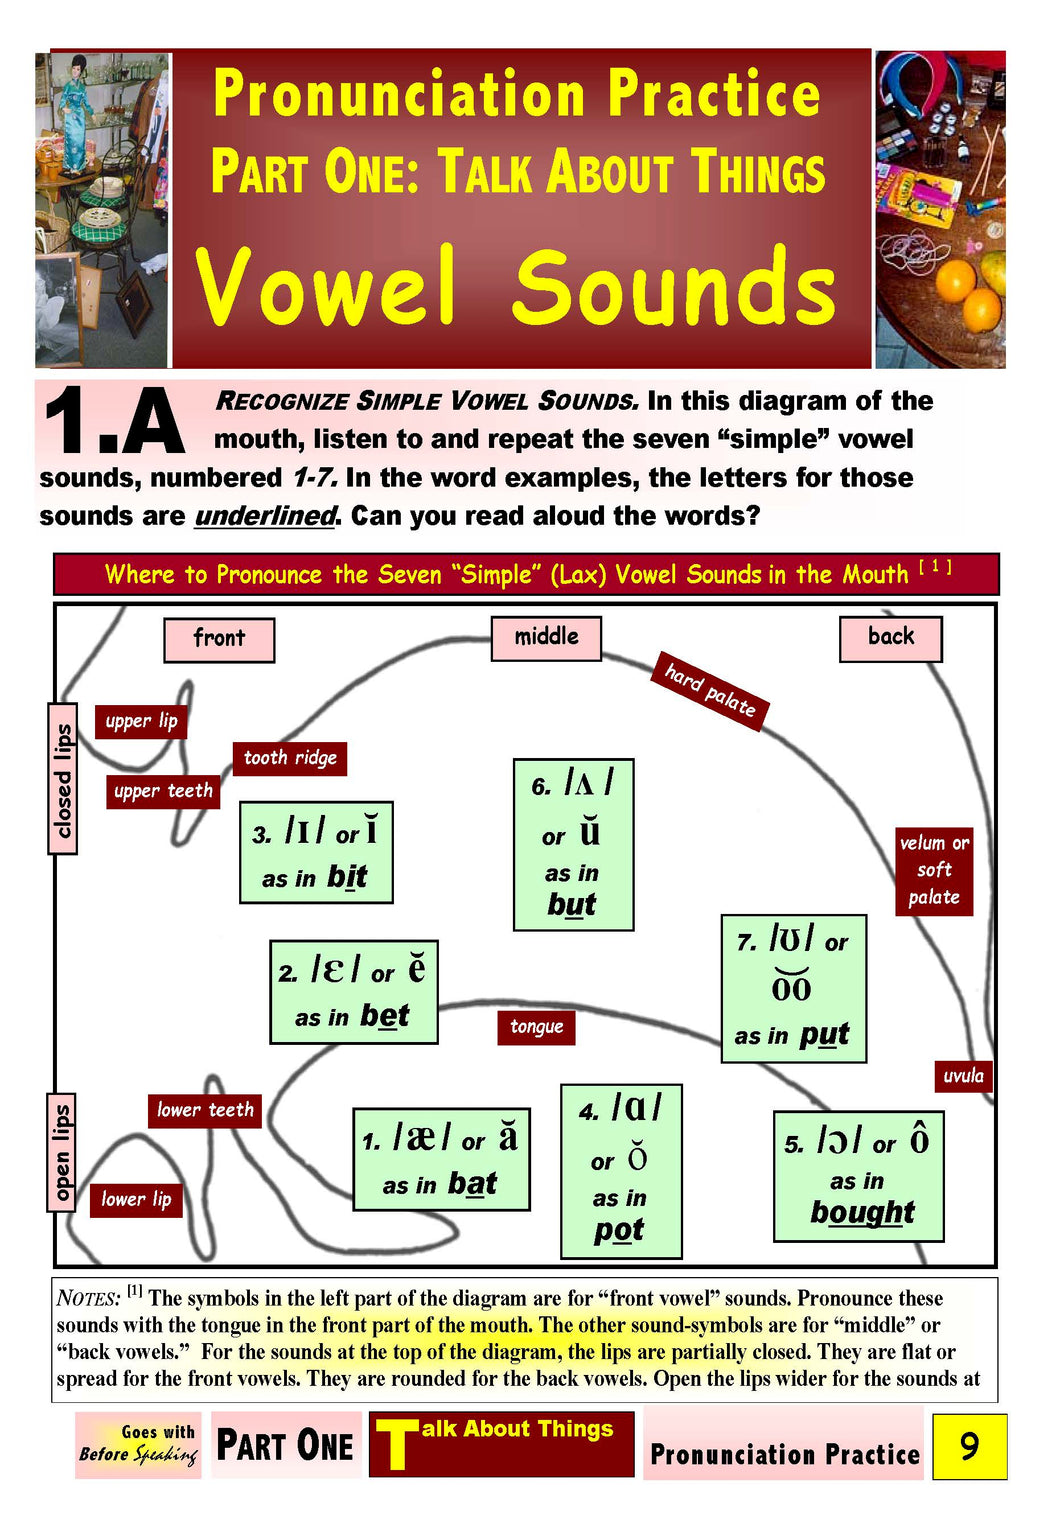 E-01.02 Recognize, Pronounce, & Contrast Simple Vowel Sounds in Words for Things